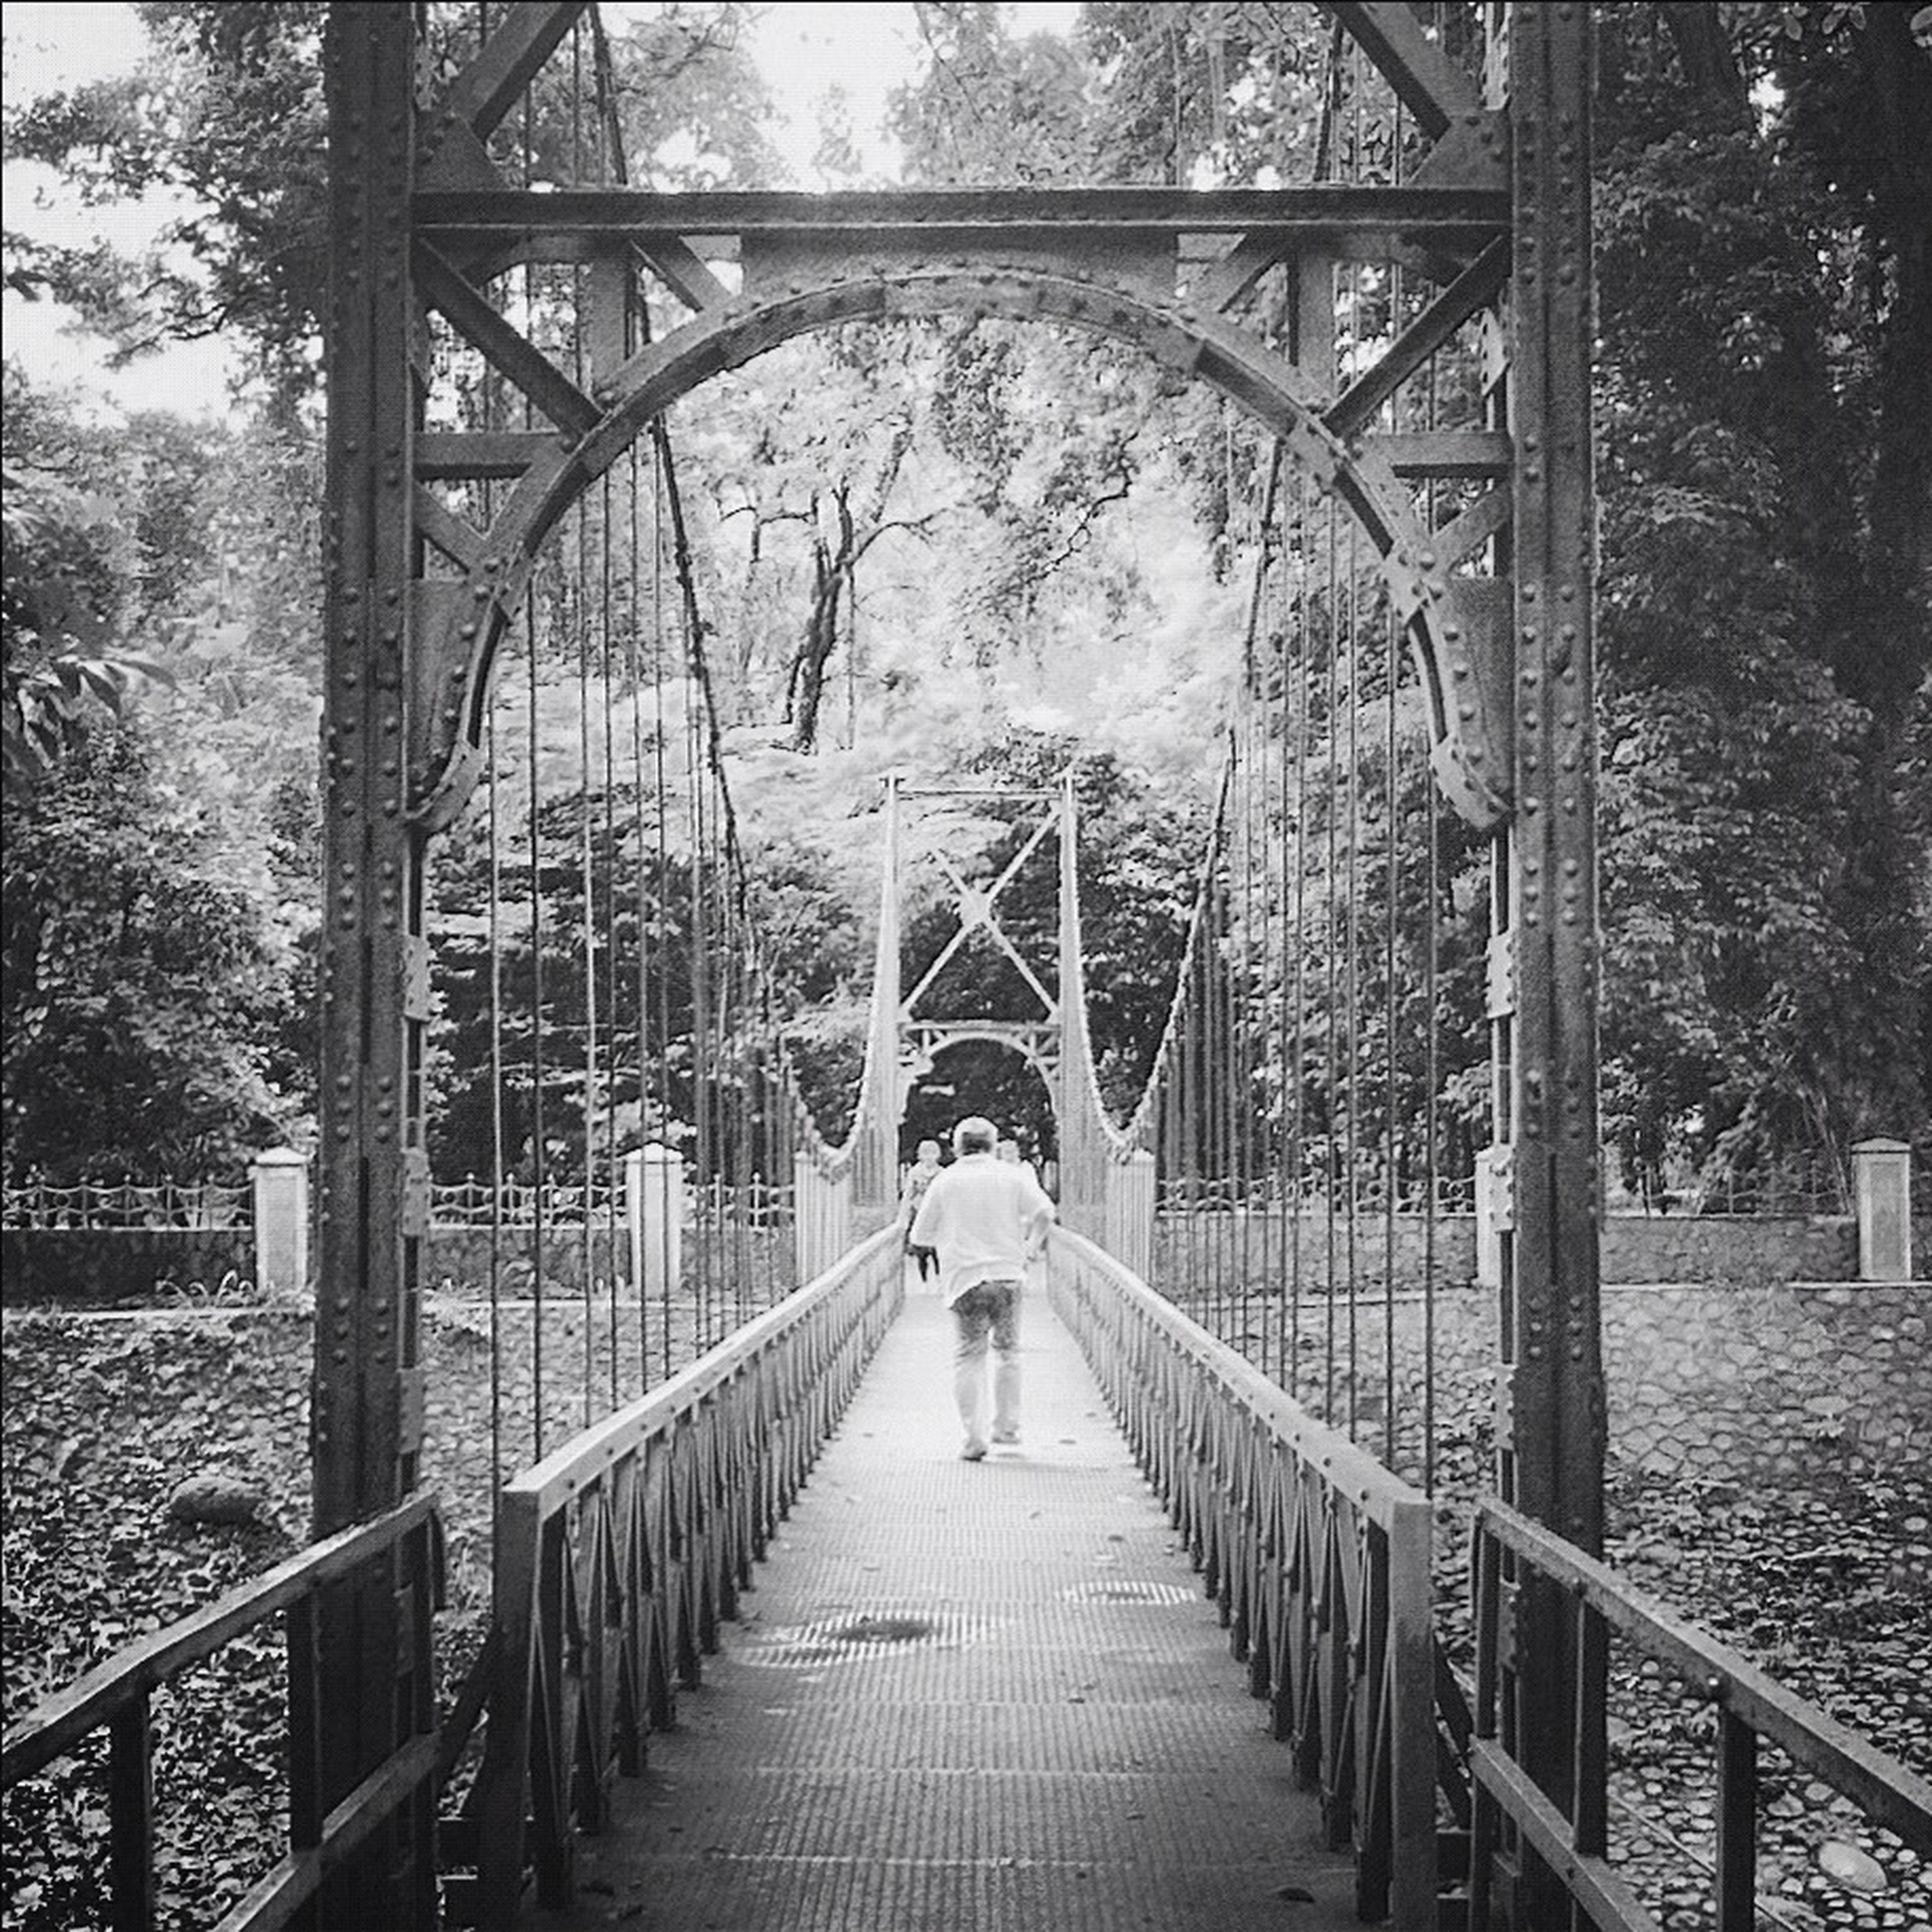 the way forward, railing, lifestyles, tree, rear view, full length, walking, built structure, footbridge, architecture, leisure activity, bridge - man made structure, connection, diminishing perspective, men, person, vanishing point, metal